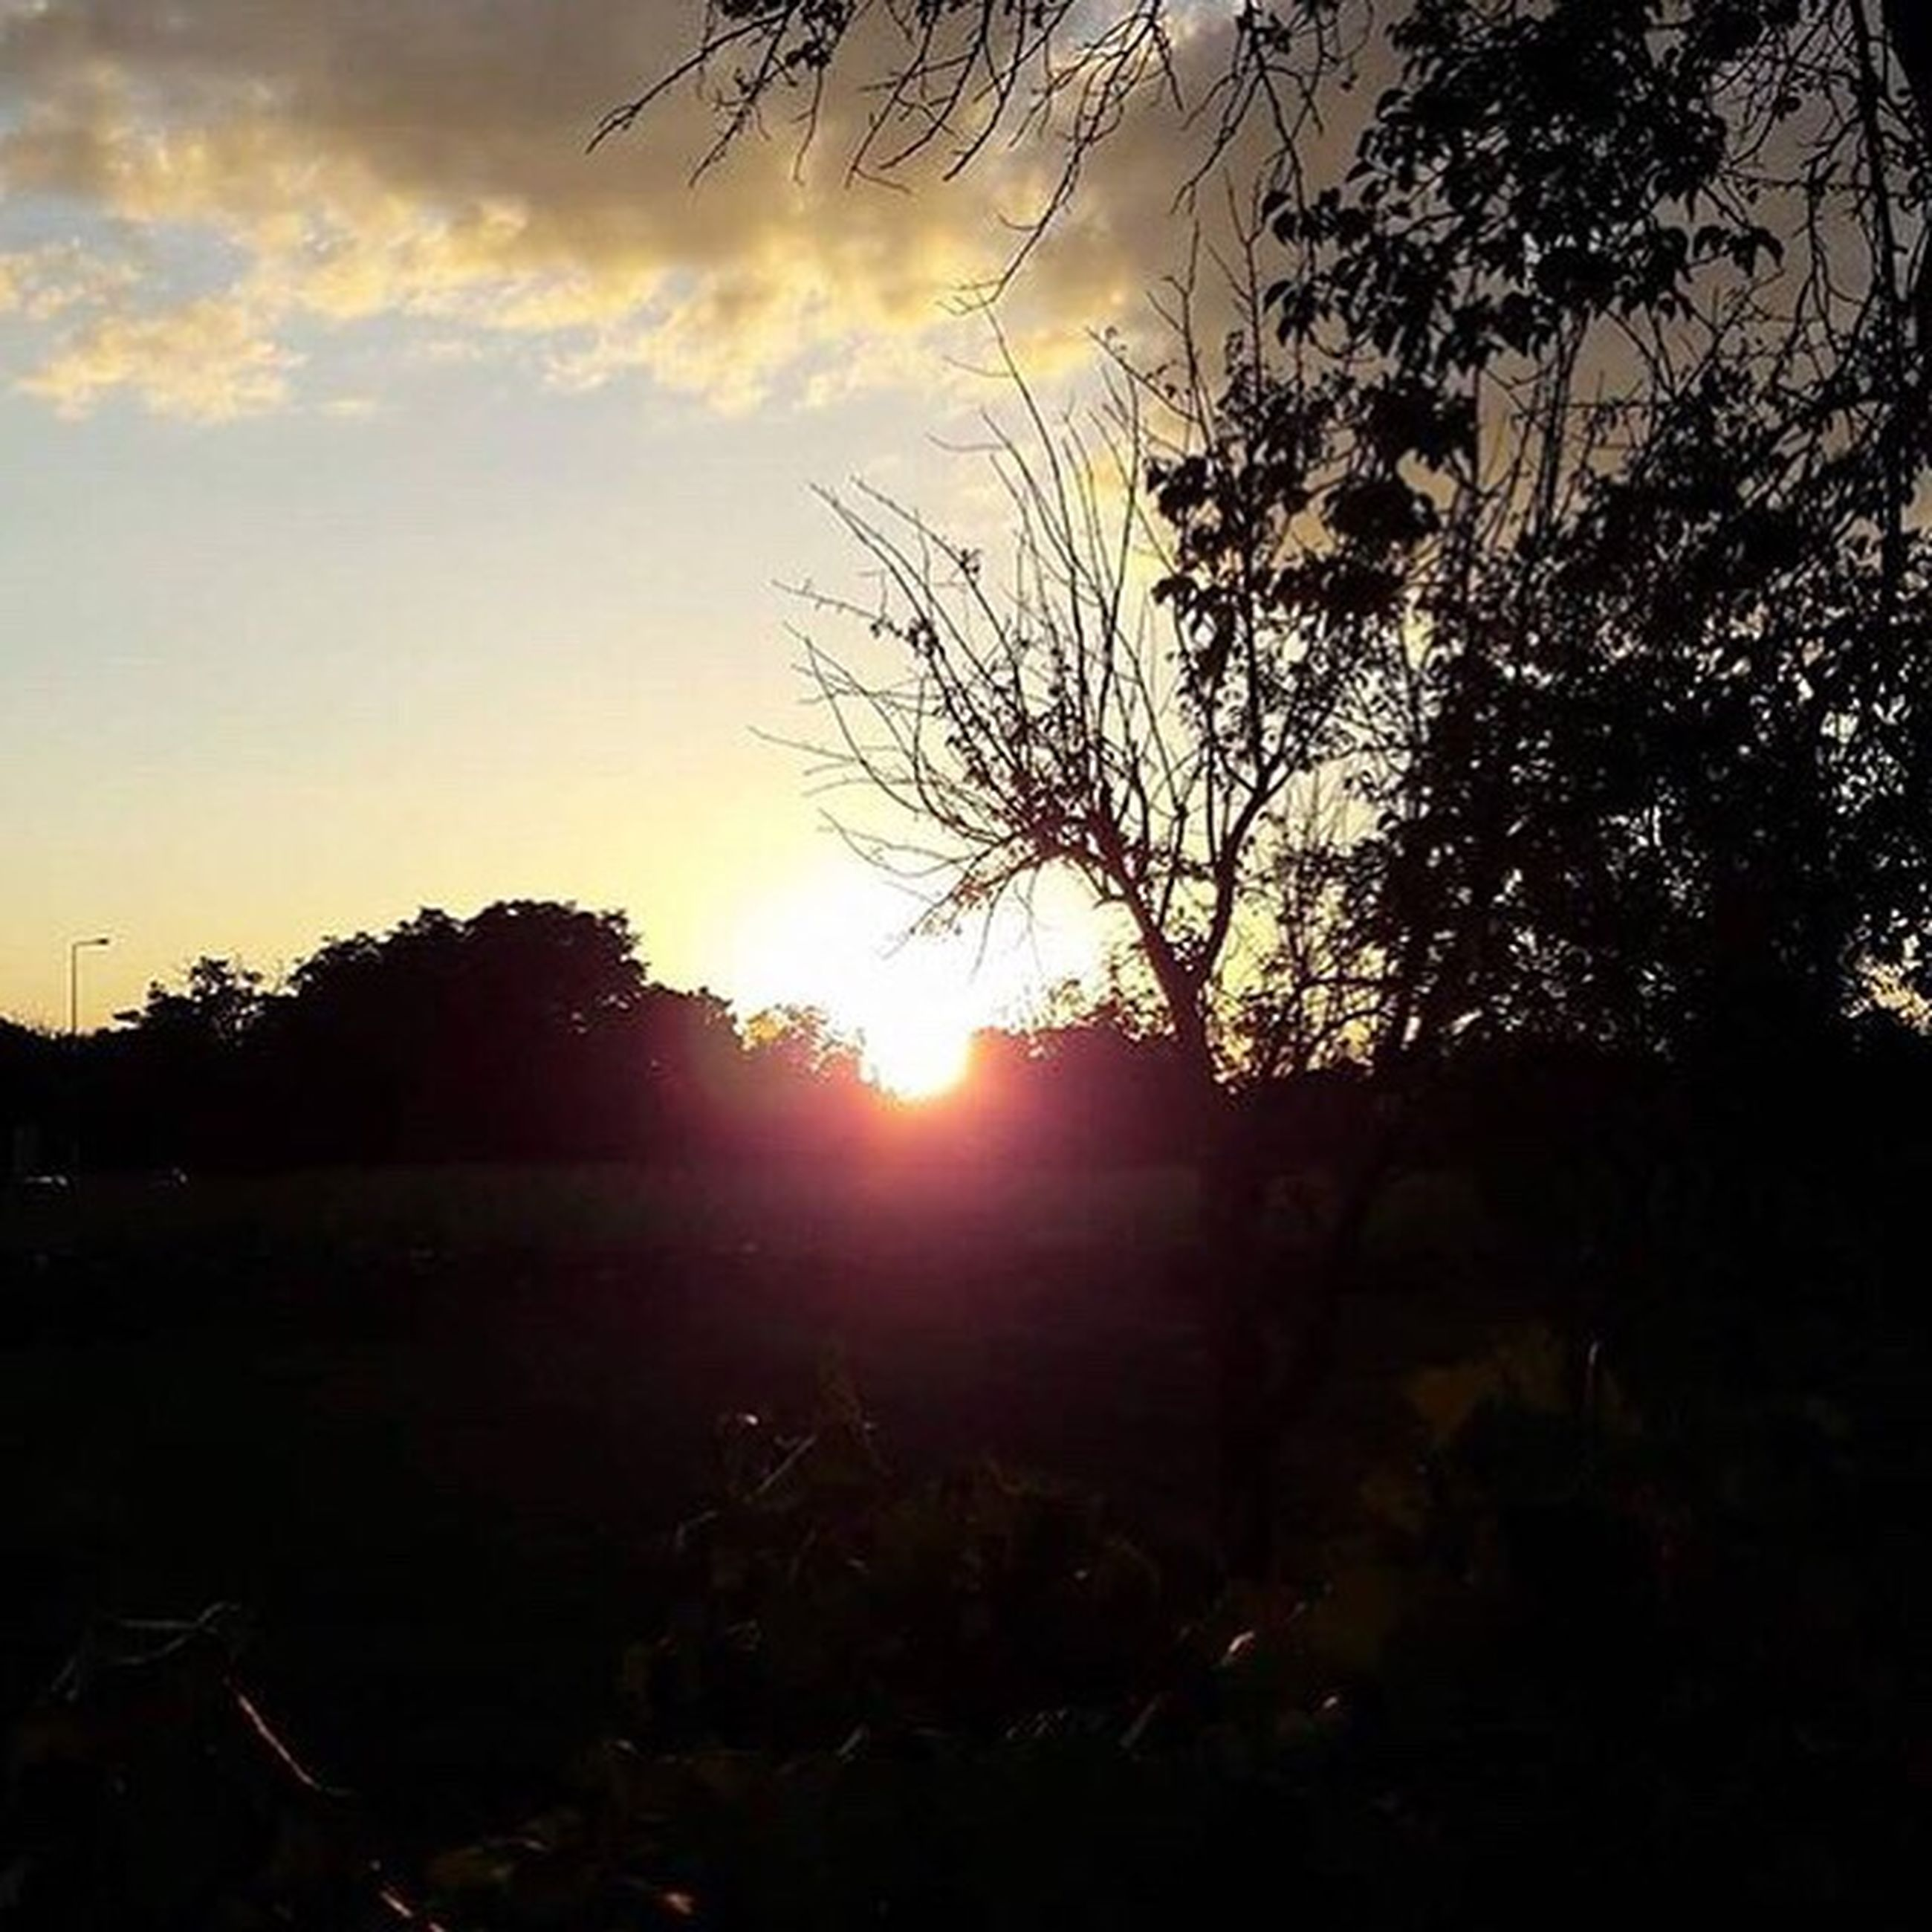 sun, sunset, tranquil scene, tree, scenics, tranquility, silhouette, sunlight, sky, beauty in nature, landscape, field, nature, branch, lens flare, outdoors, growth, non-urban scene, solitude, remote, sunbeam, outline, no people, majestic, vibrant color, cloud - sky